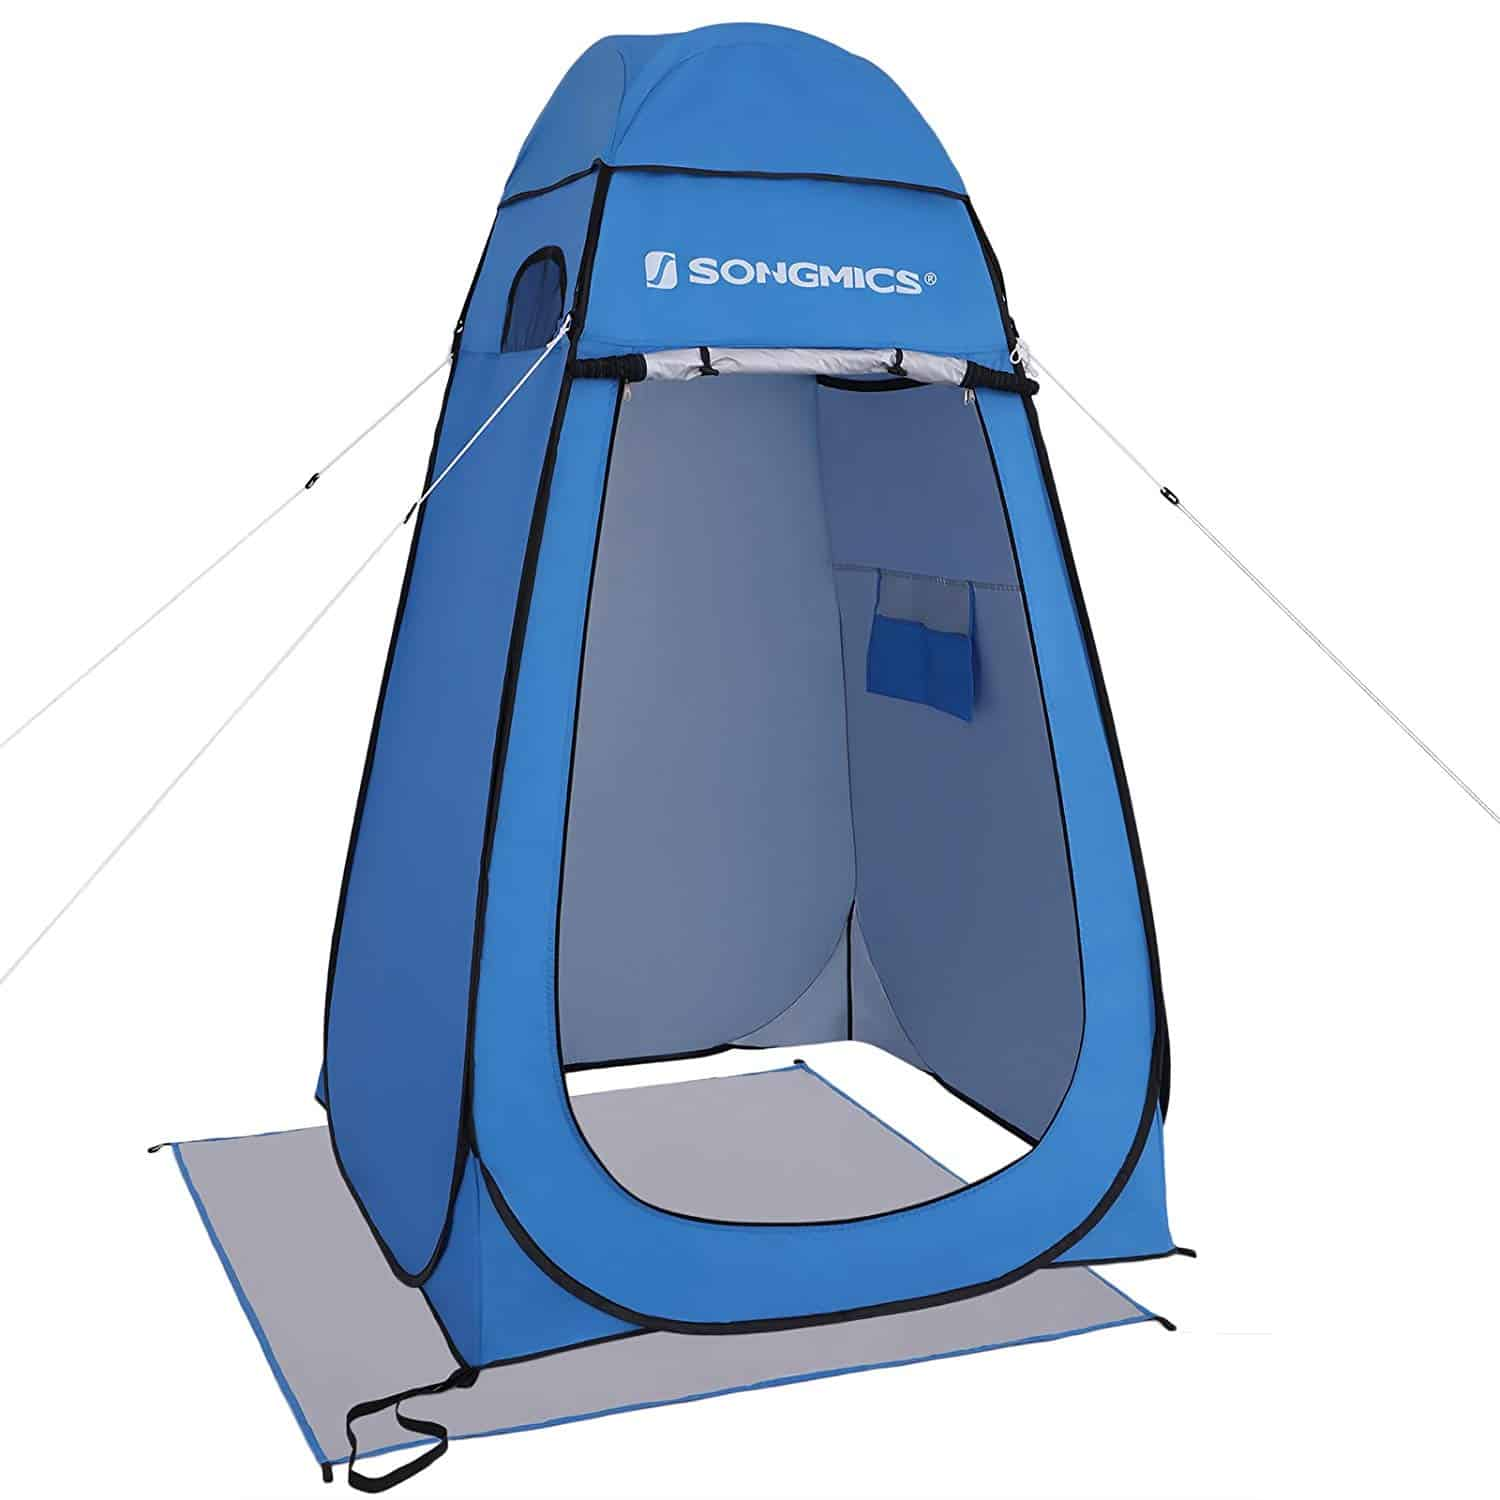 Songmics portable pop up tent